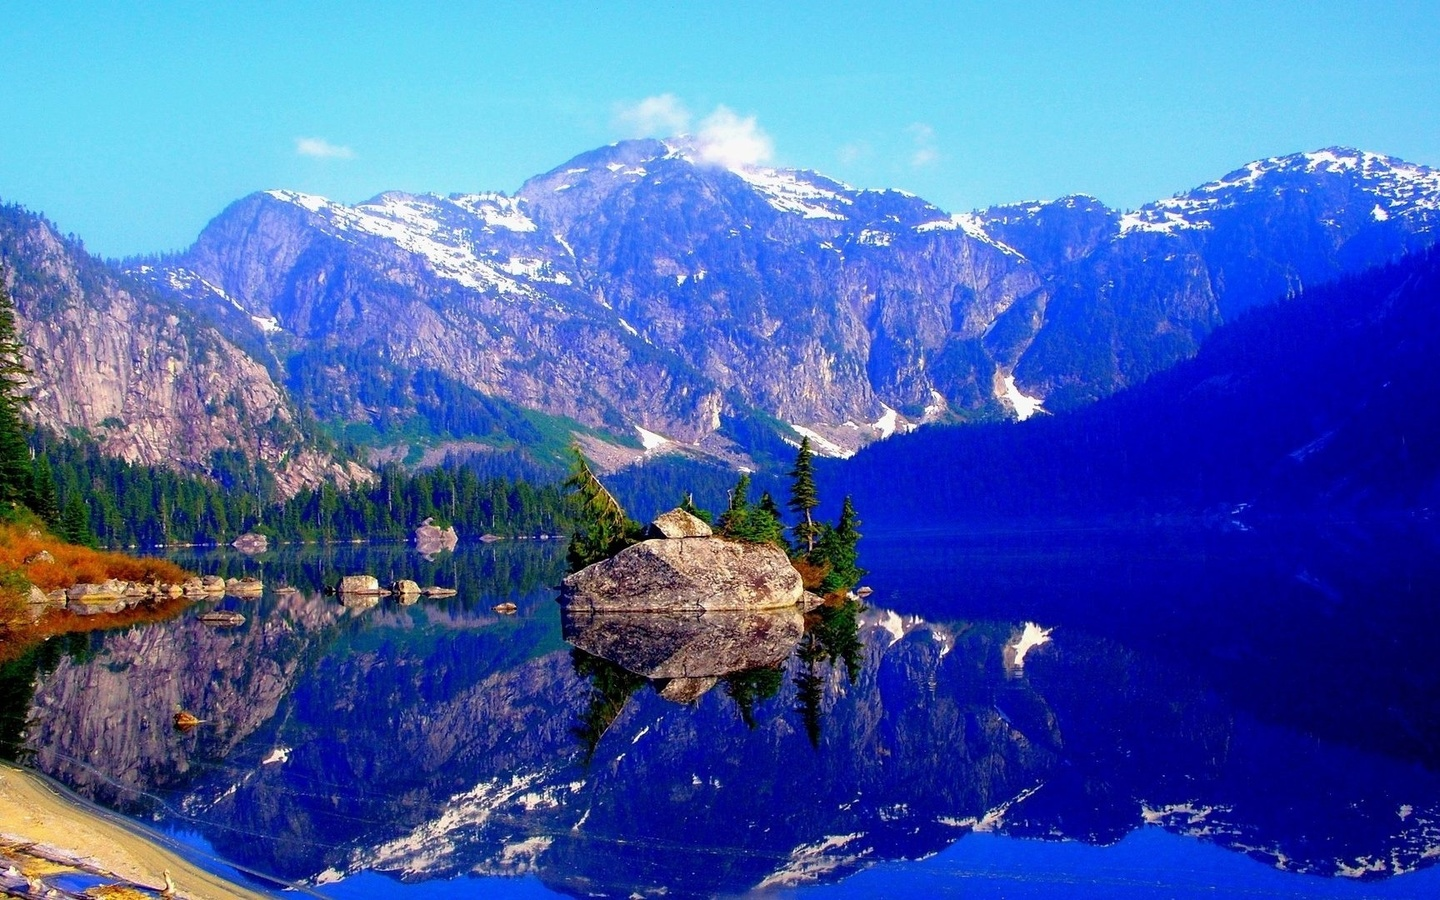 landscape, nature, mountains, lake, island